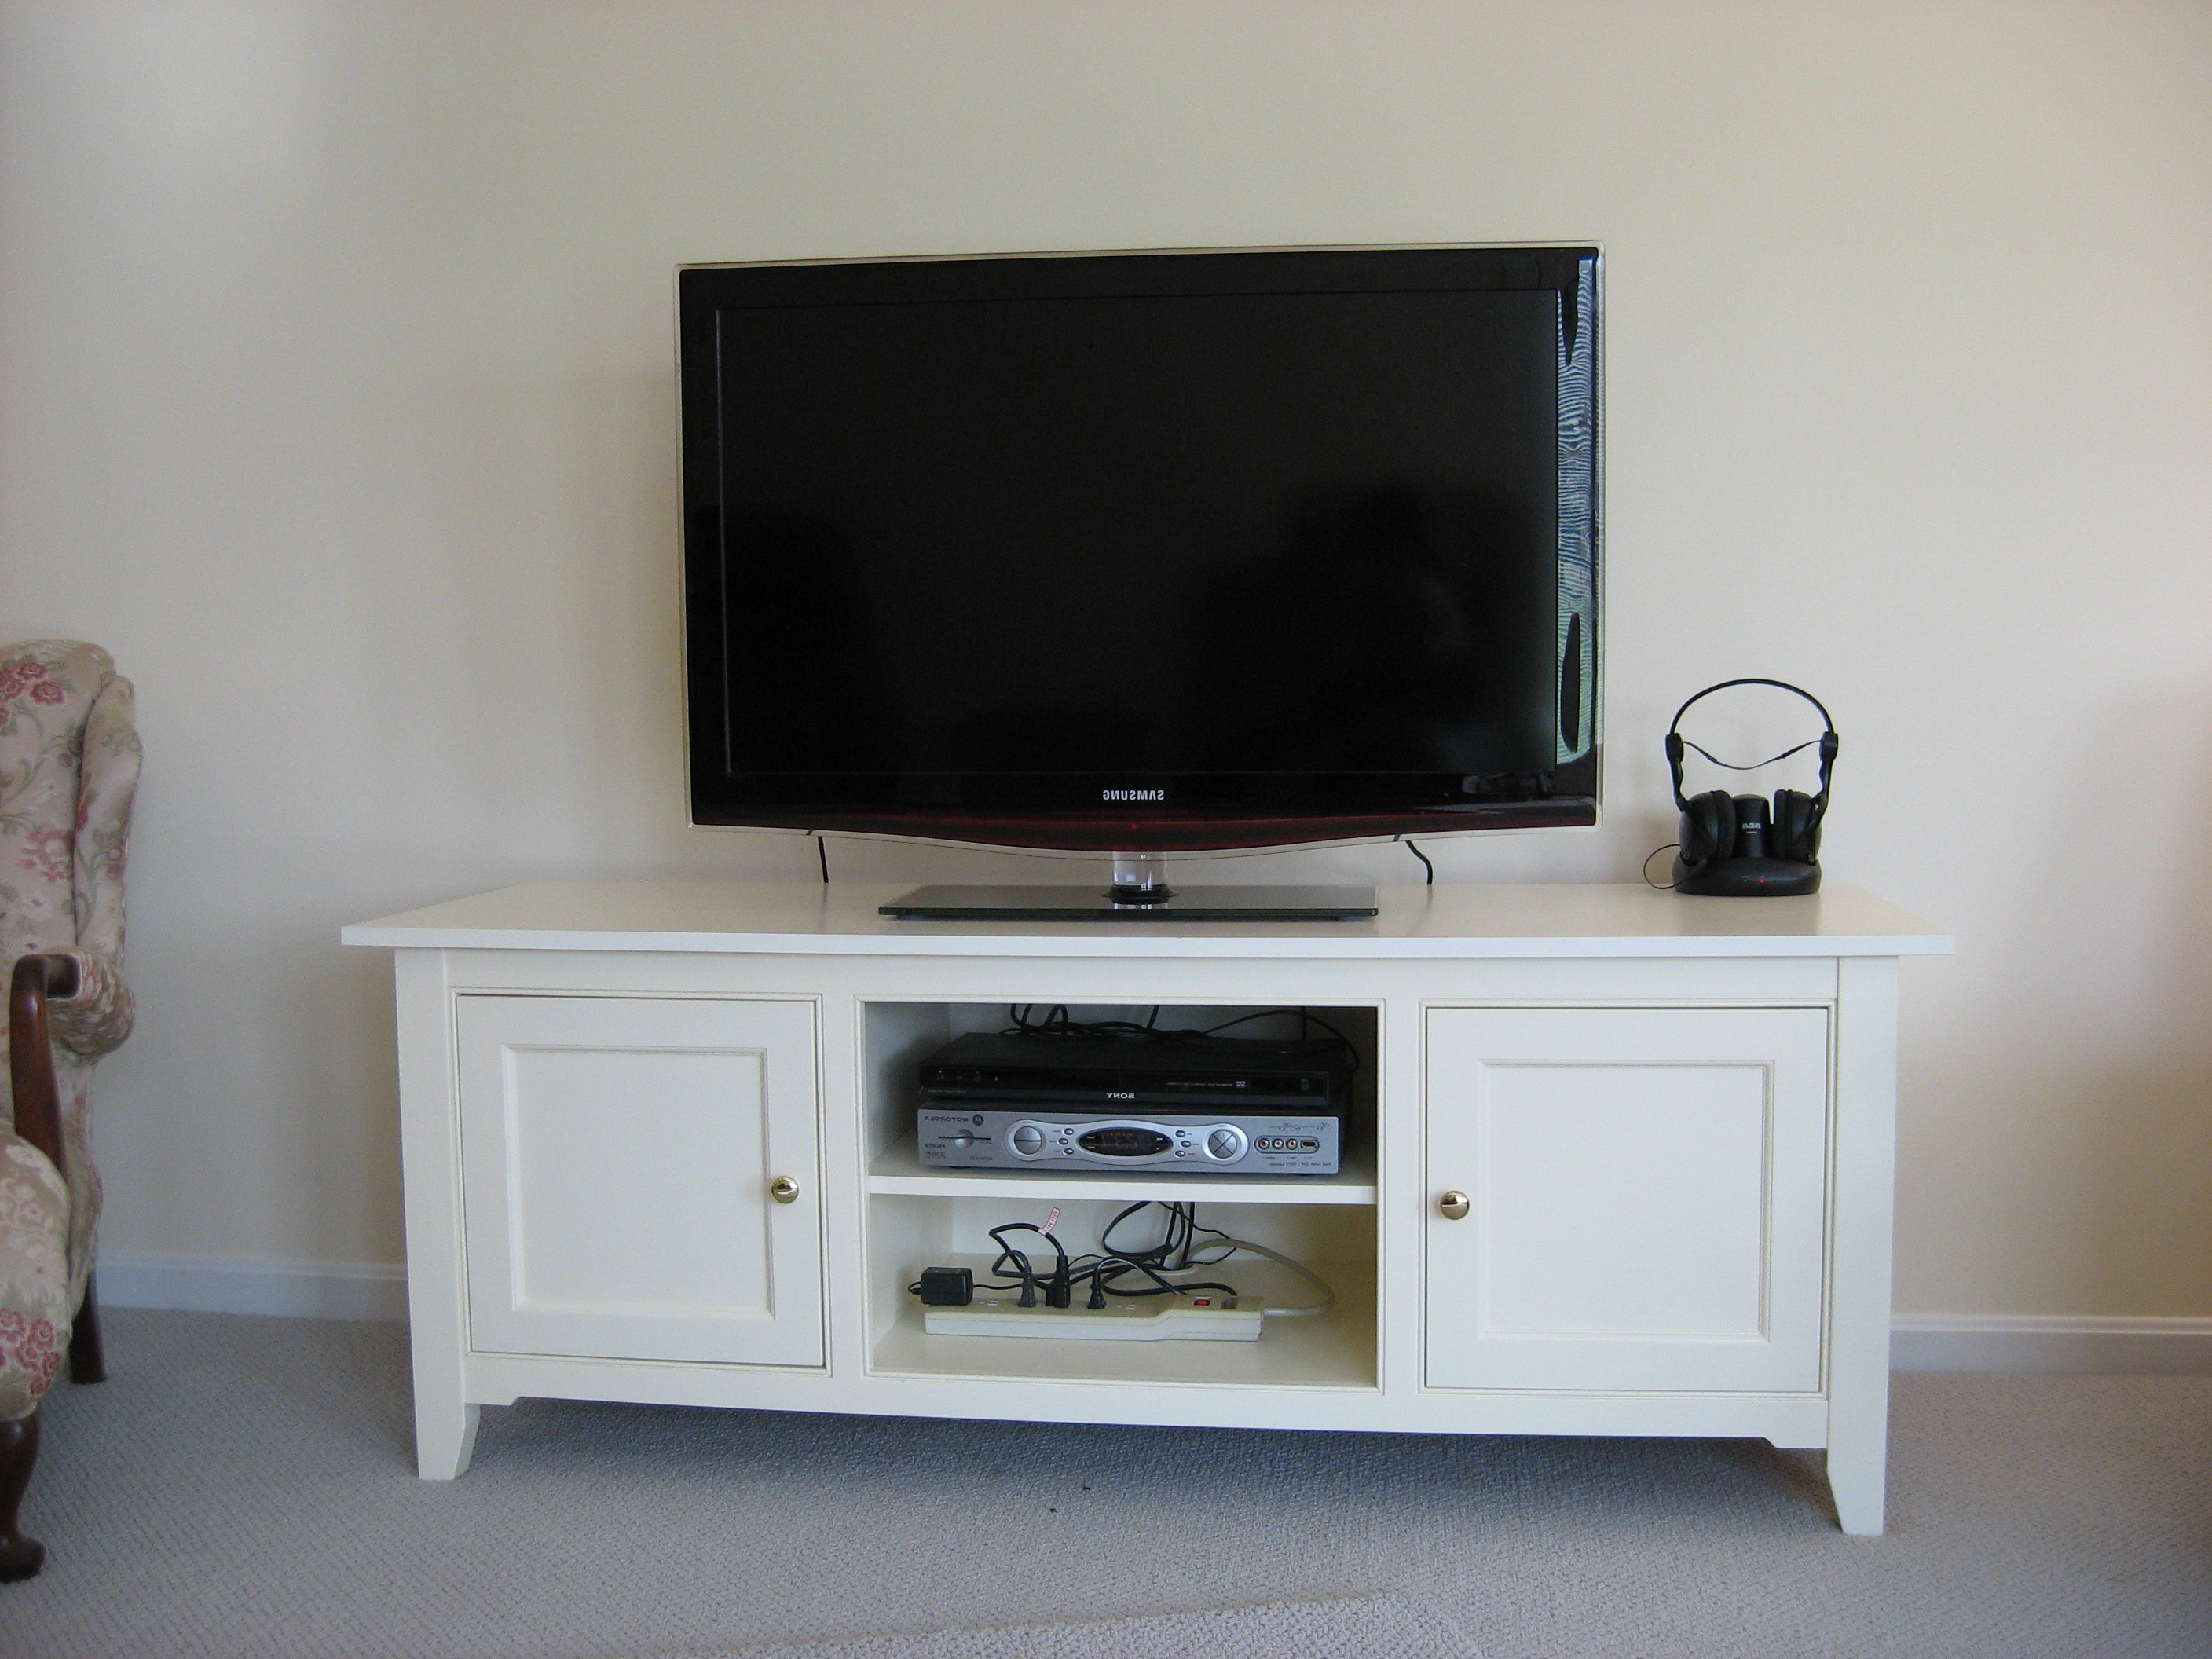 Widely Used Tv Cabinets With Storage Regarding Inspiring Idea Of White White Wooden Tv Cabinet Bathroom Wall (View 19 of 20)